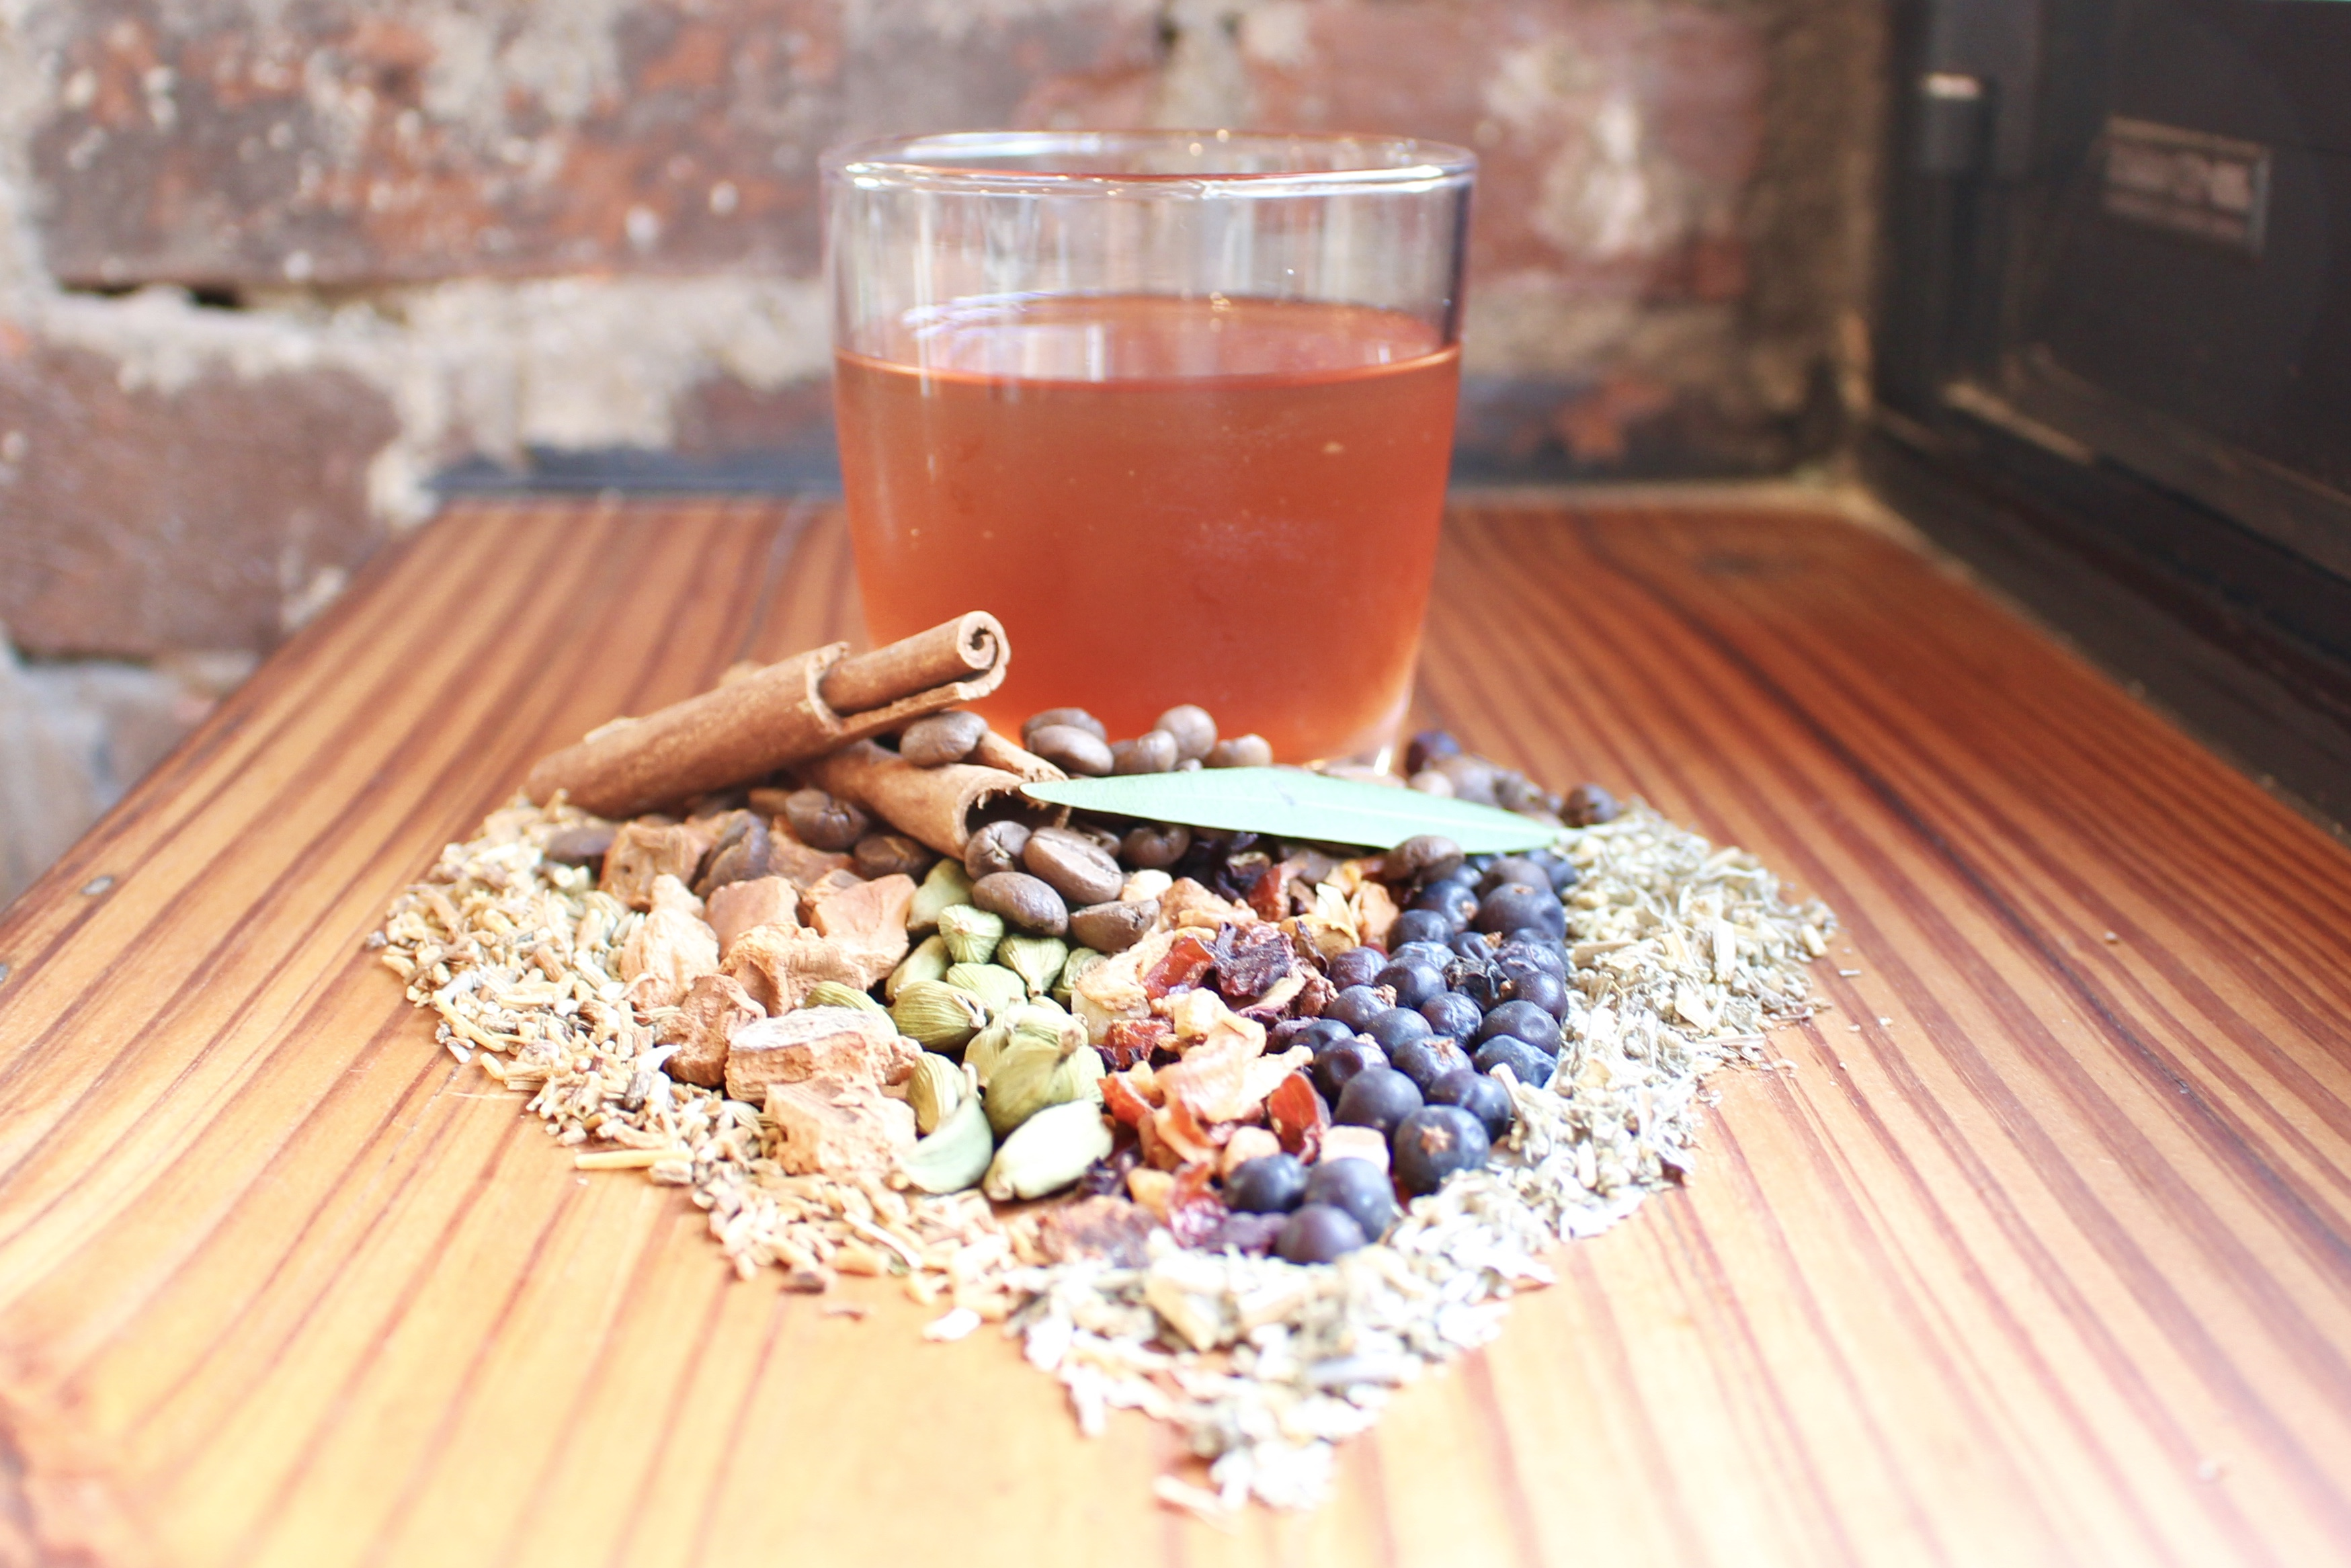 Plenty Cafe´s housemade sweet vermouth is steeped from nearly 20 botanicals.